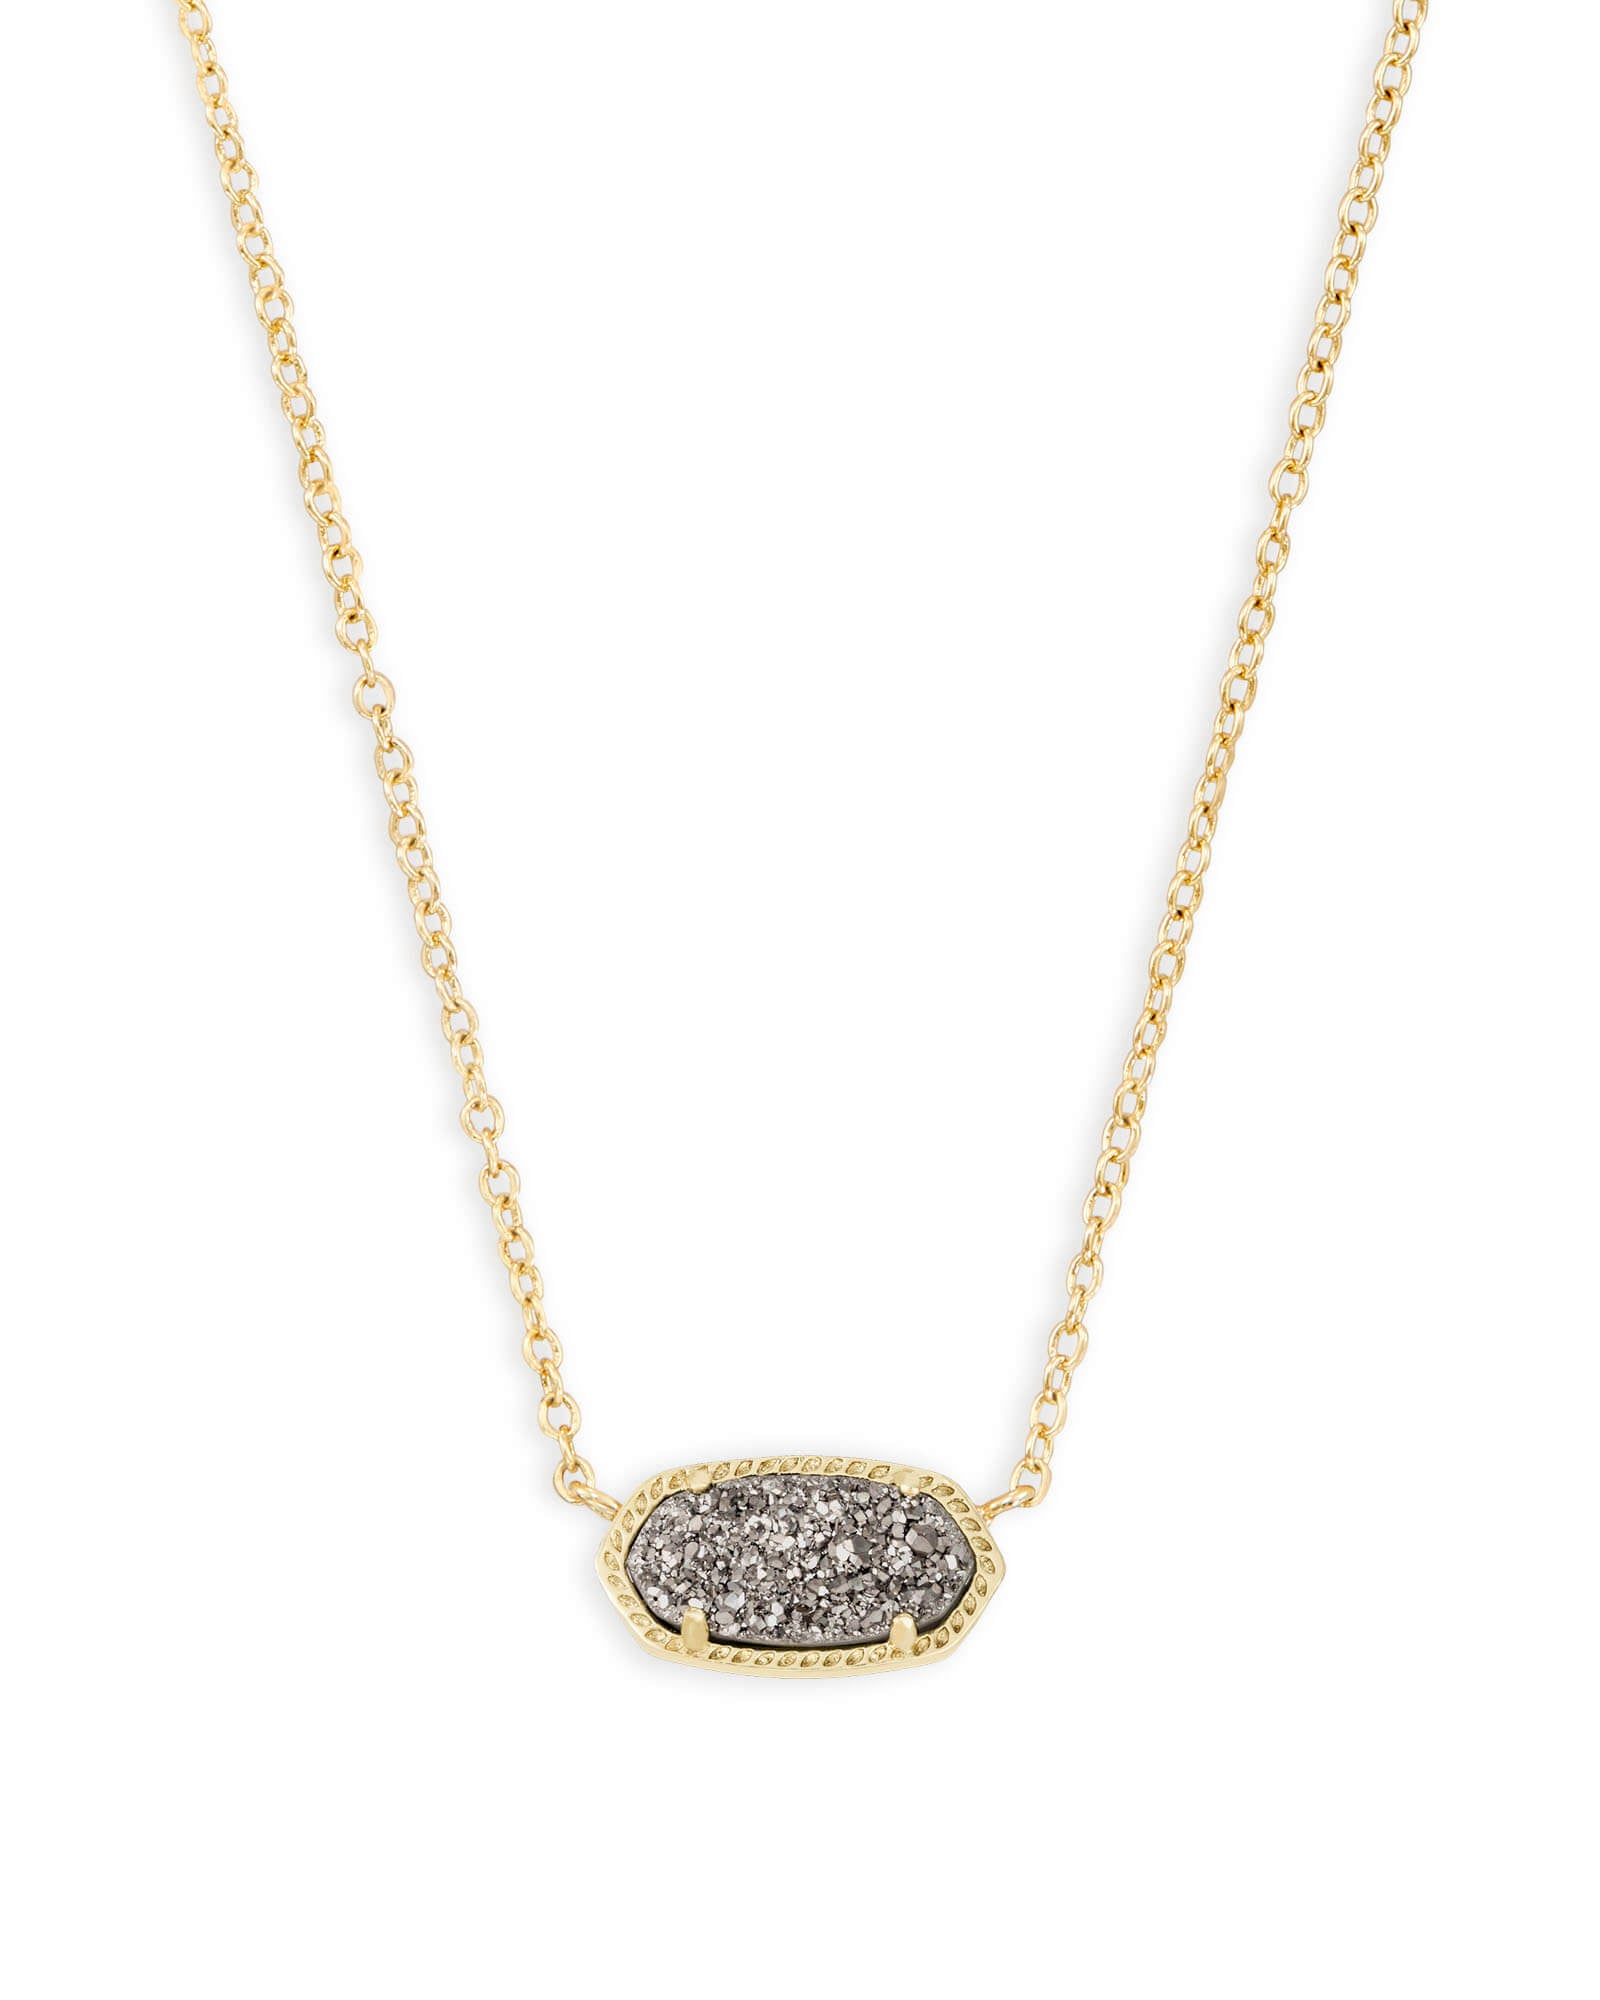 Kendra Scott Elisa Necklace in Platinum Drusy - Gabrielle's Biloxi